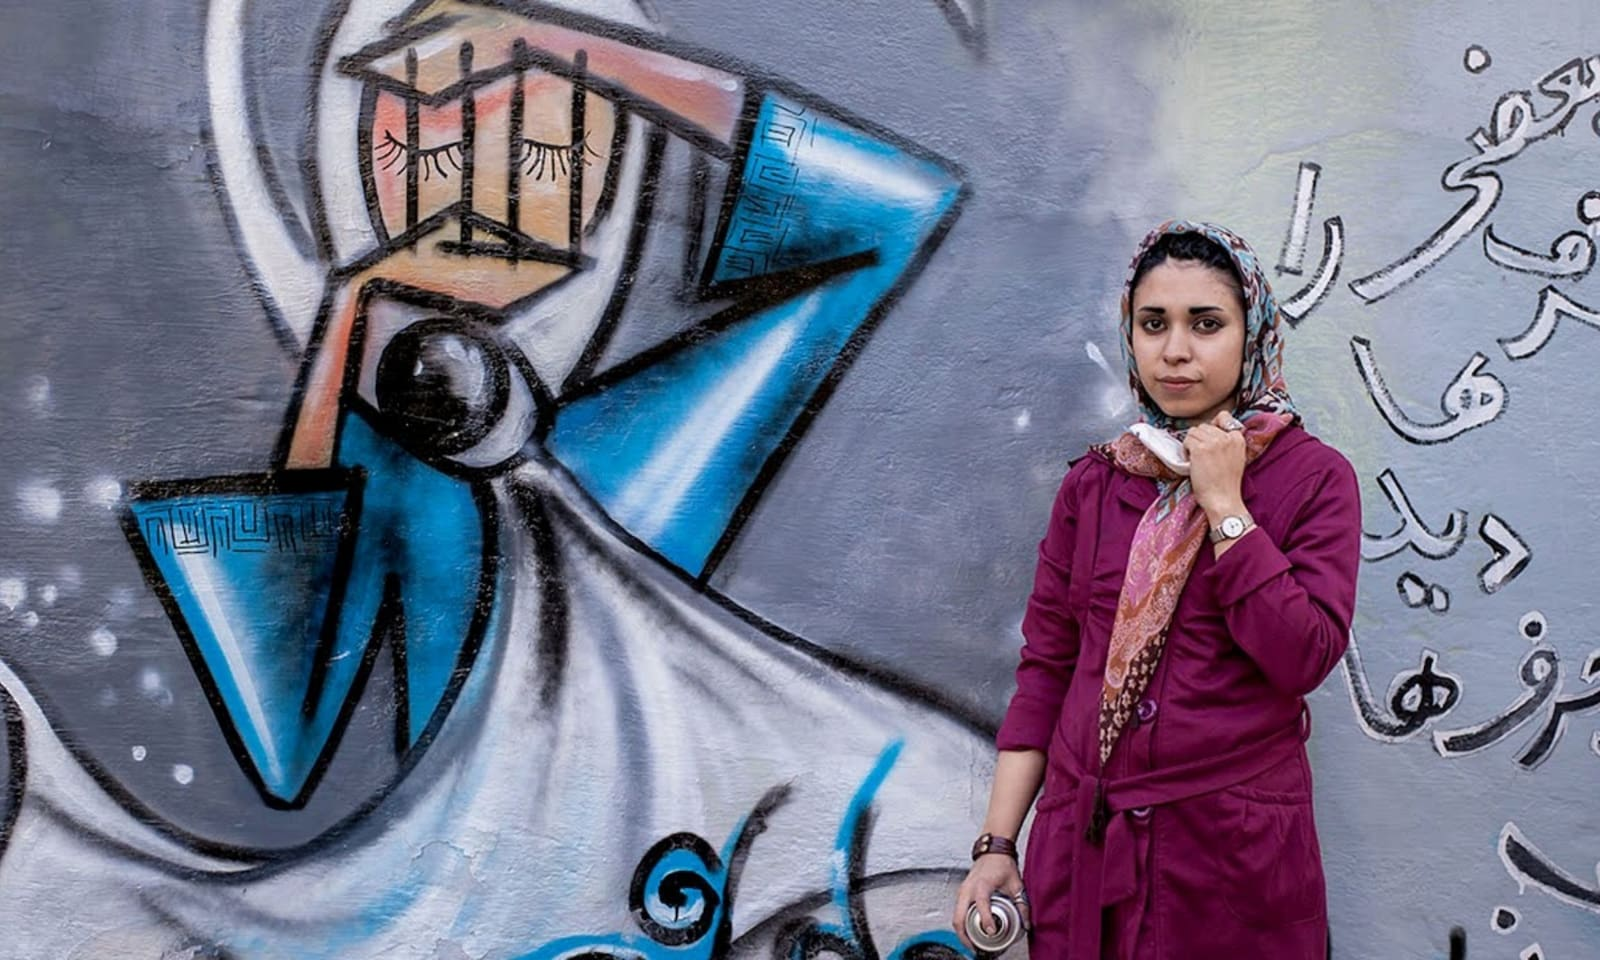 Shamsia Hassani Is Fighting The Patriarchy One Graffiti At A Time